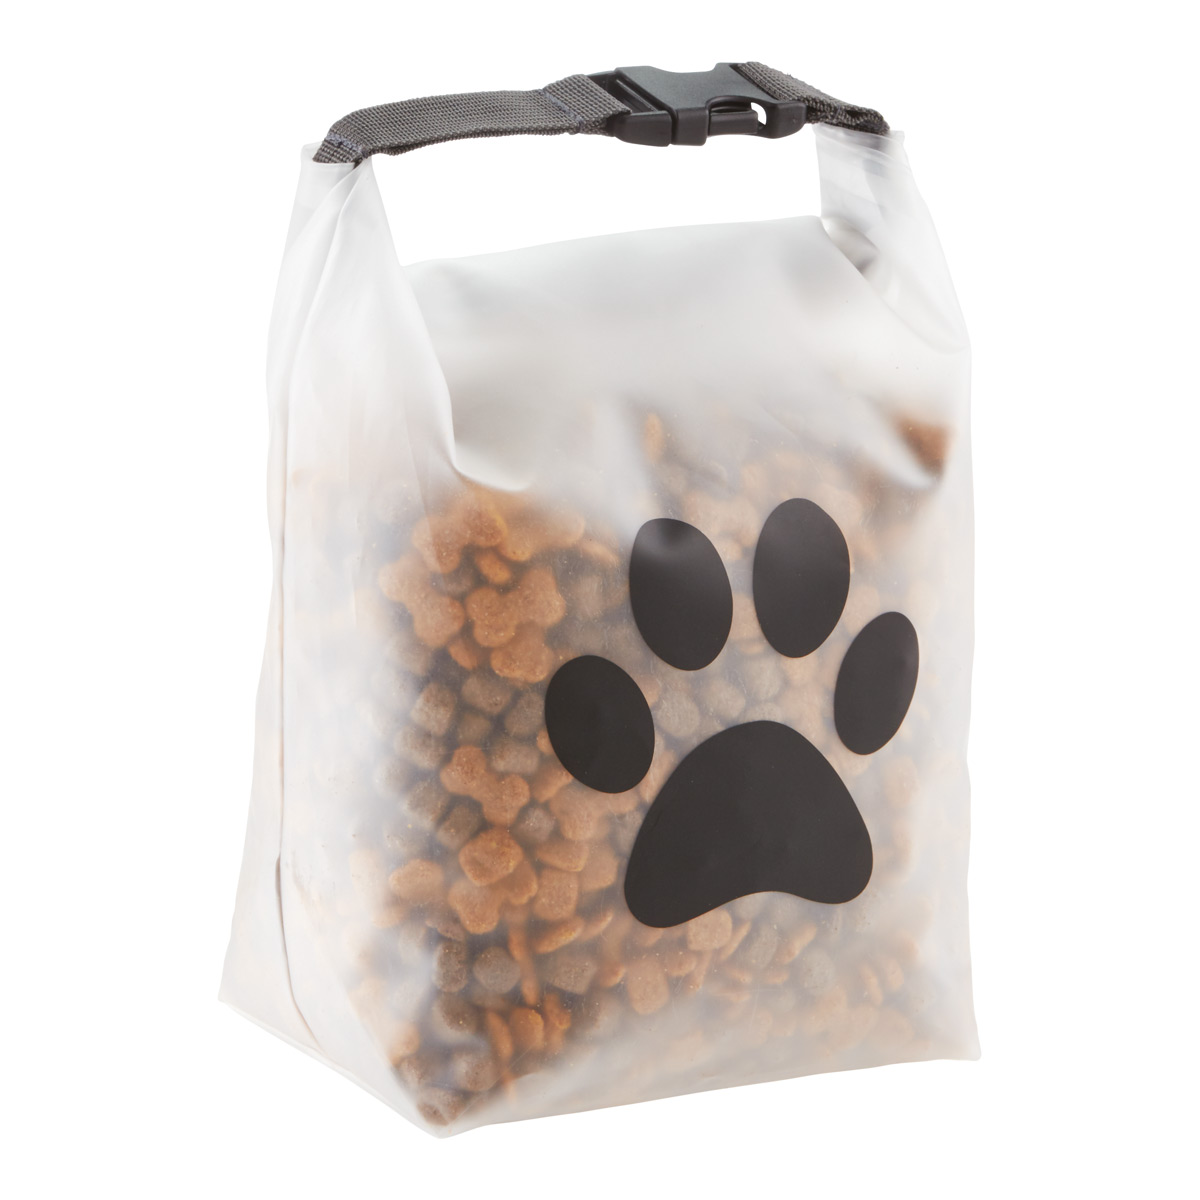 Reusable Pet Food Storage Bag | The Container Store